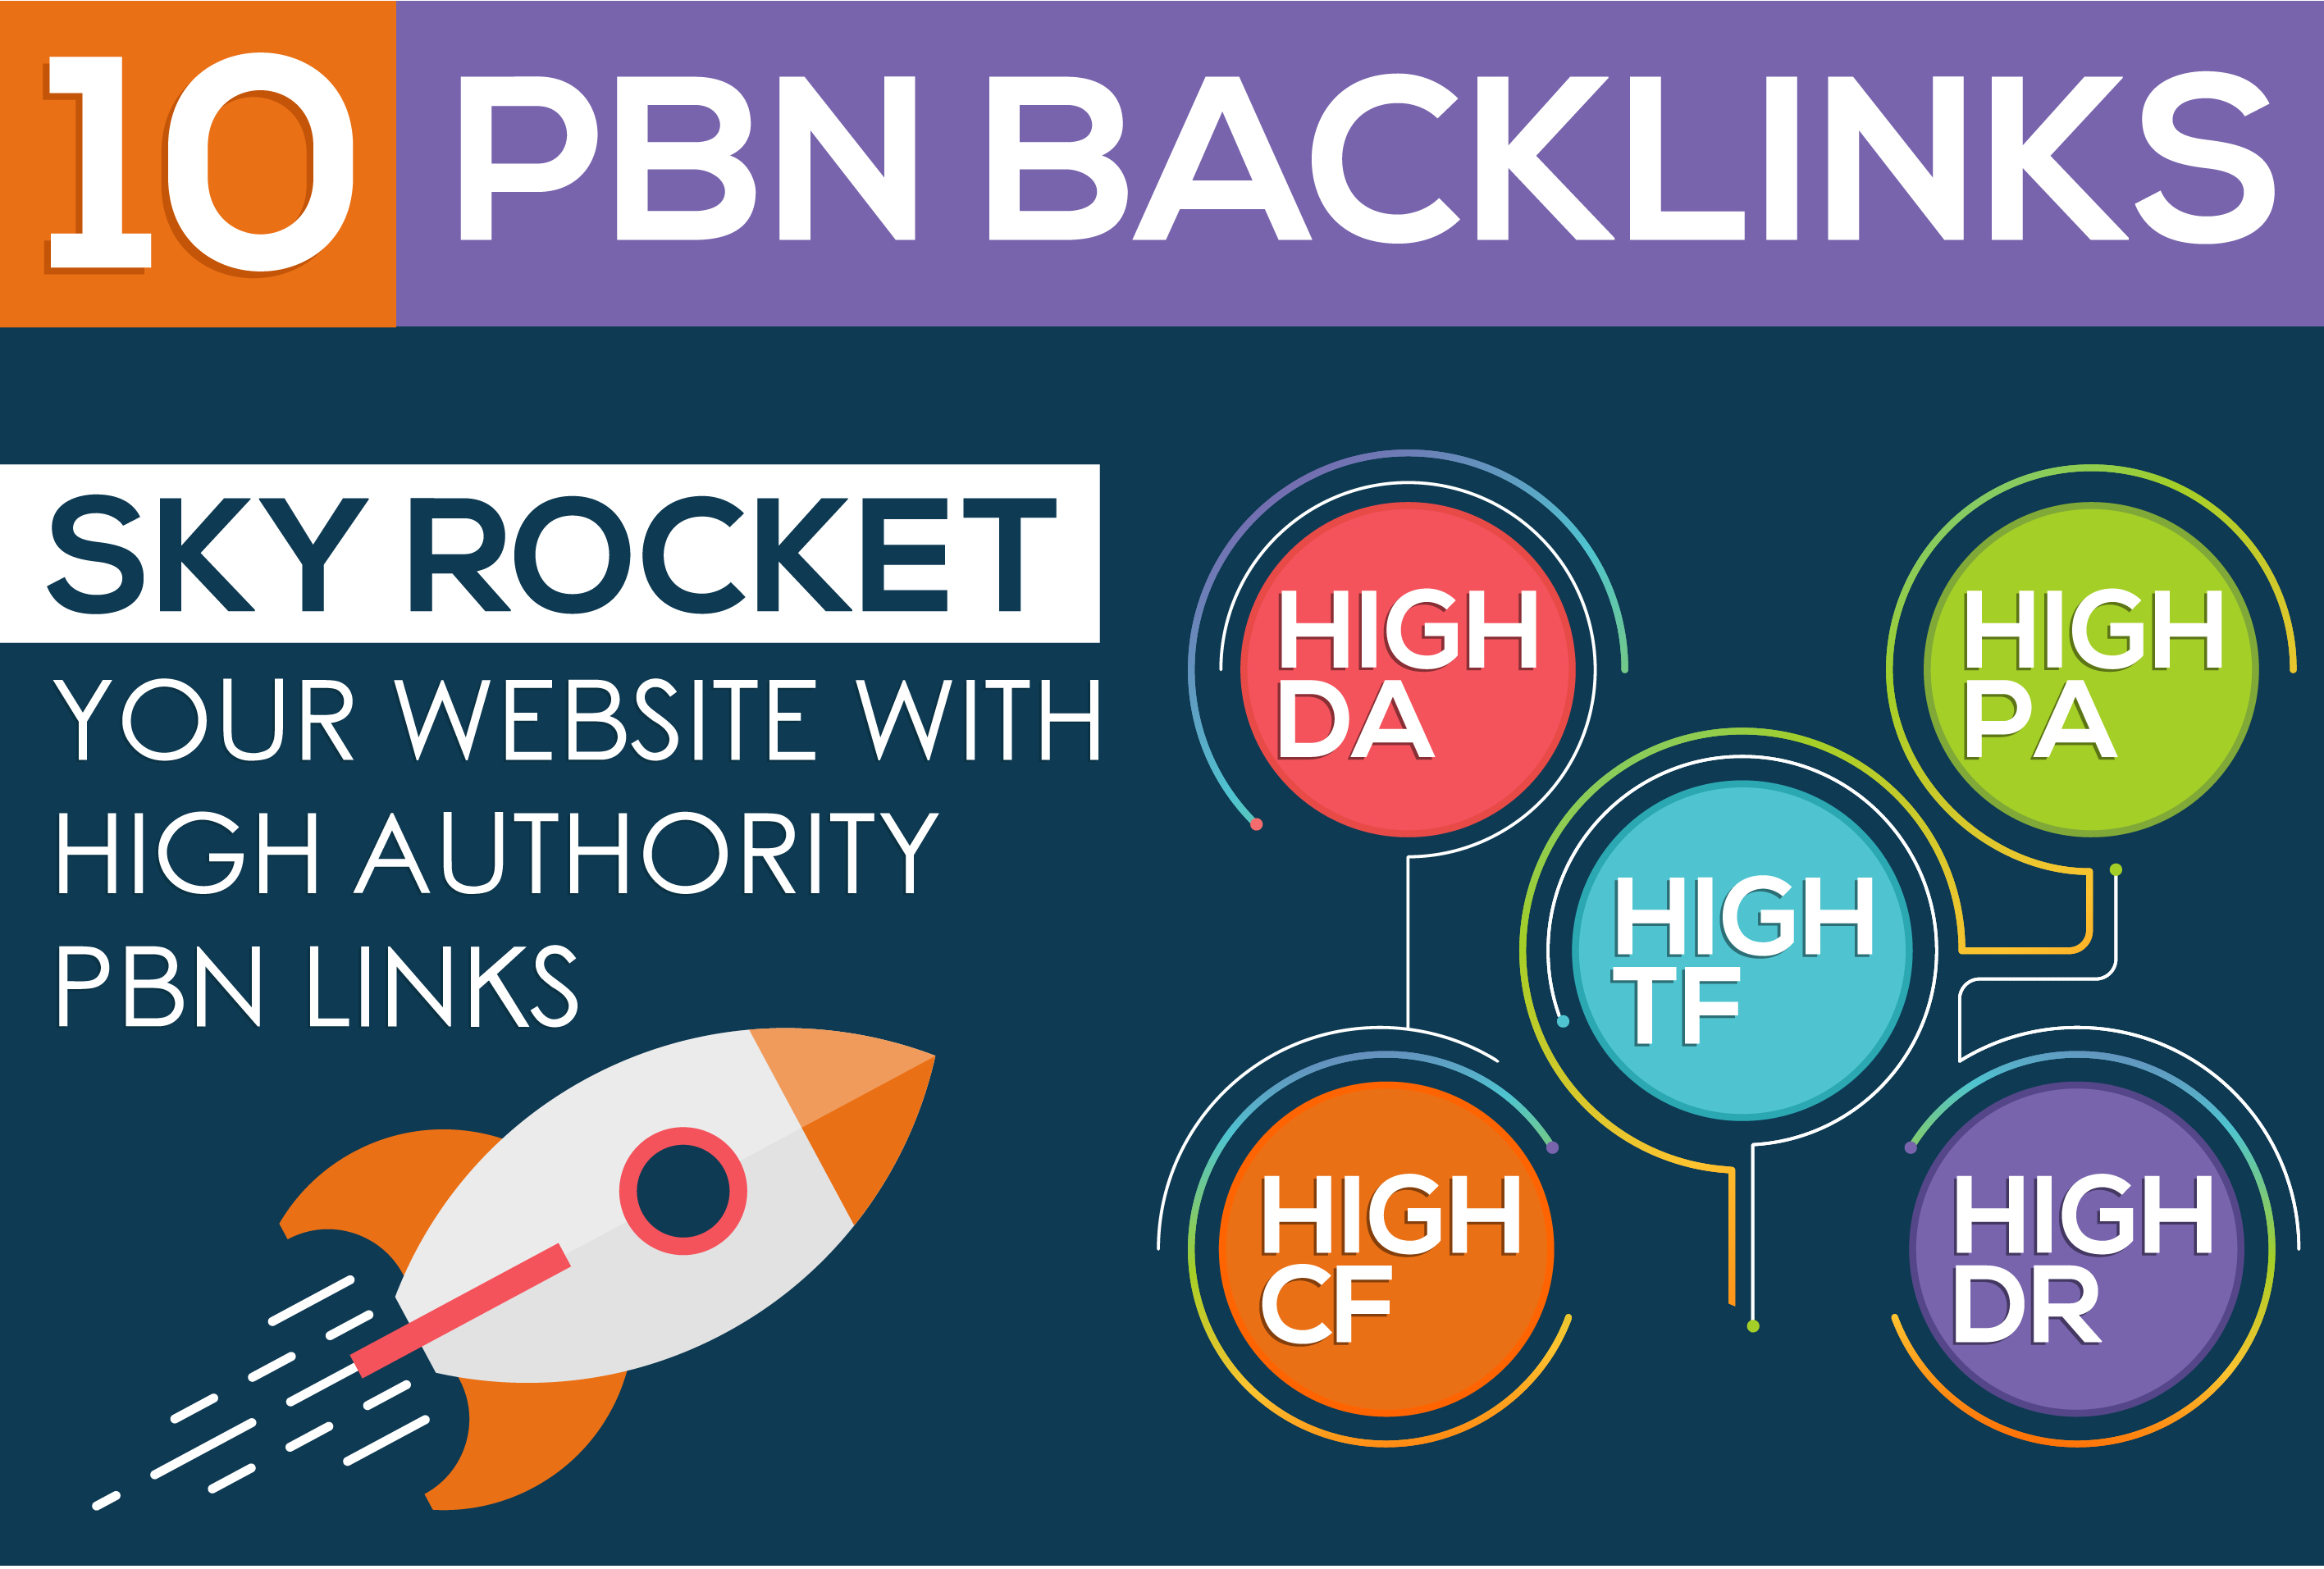 I will Provide 10 Quality Home Page PBN links affordable price + 3 web 2.0 links Free